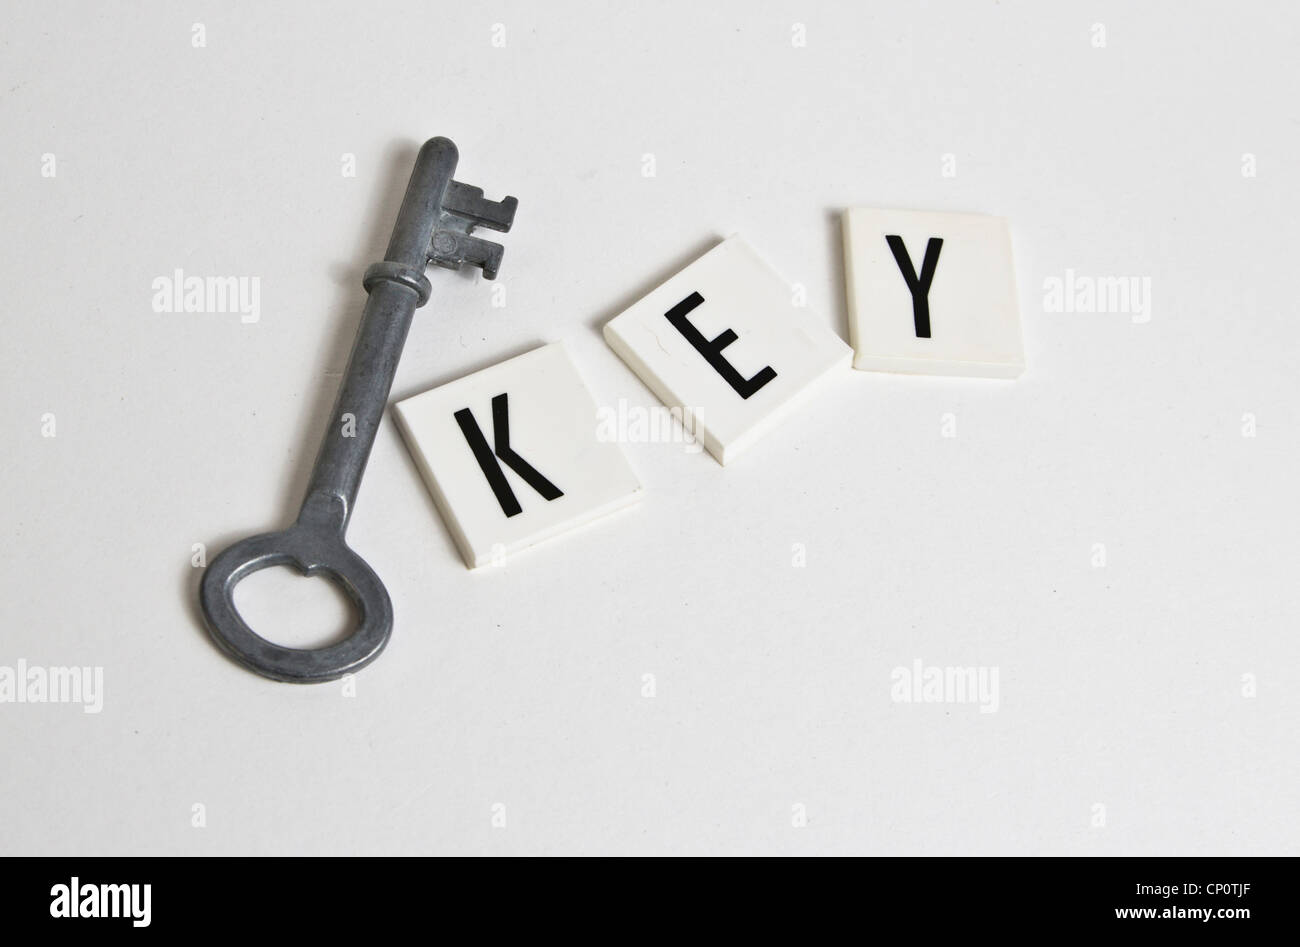 old key and text key - Stock Image